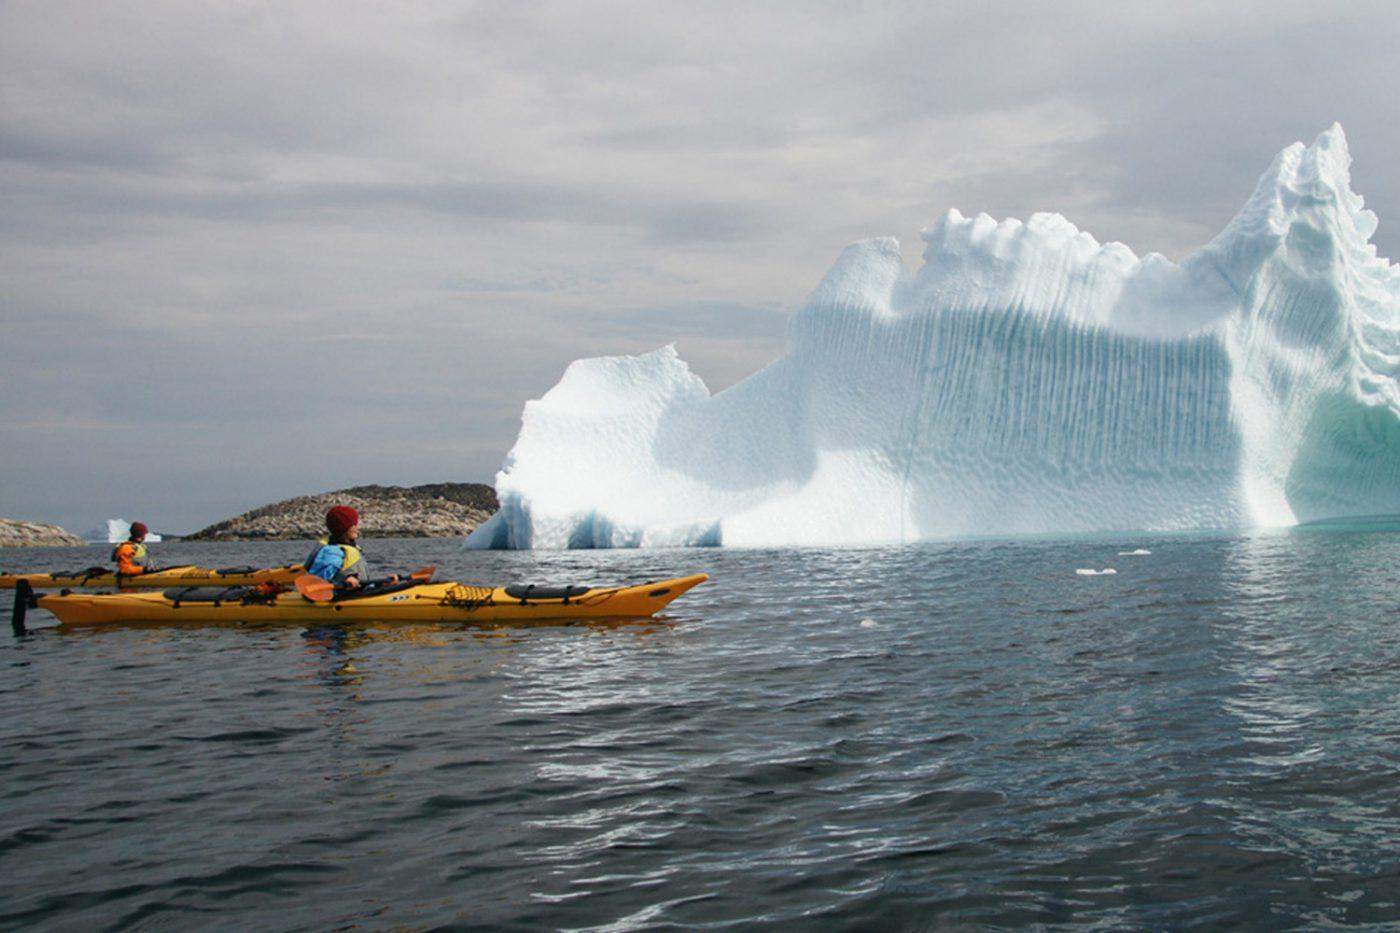 Grönlandsresor – Kayaking among whales and icebergs, 8 days